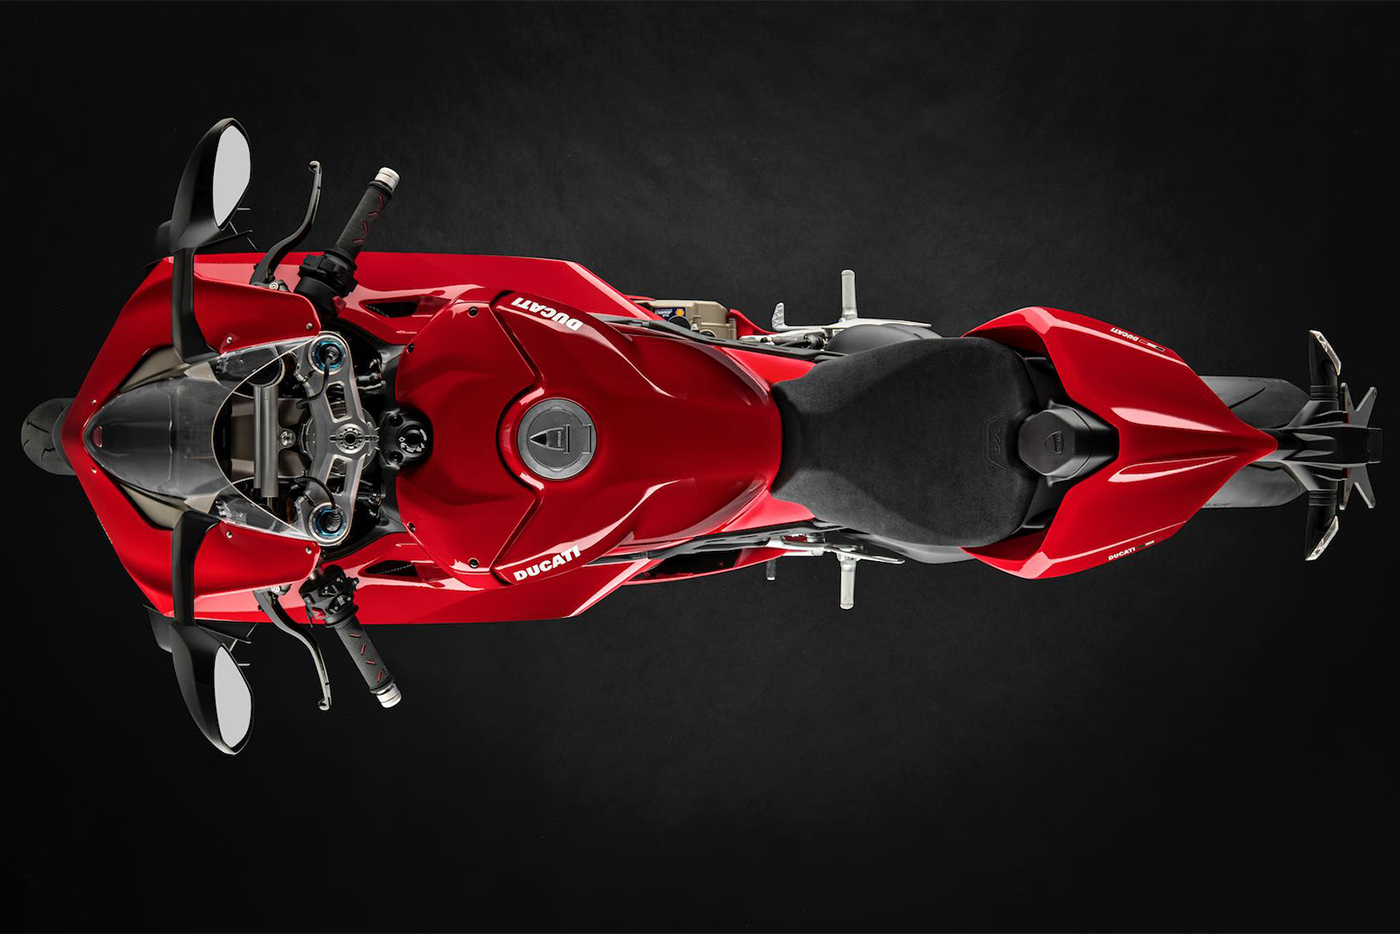 2020-ducati-panigale-v4-first-look-fast-facts-15.jpg